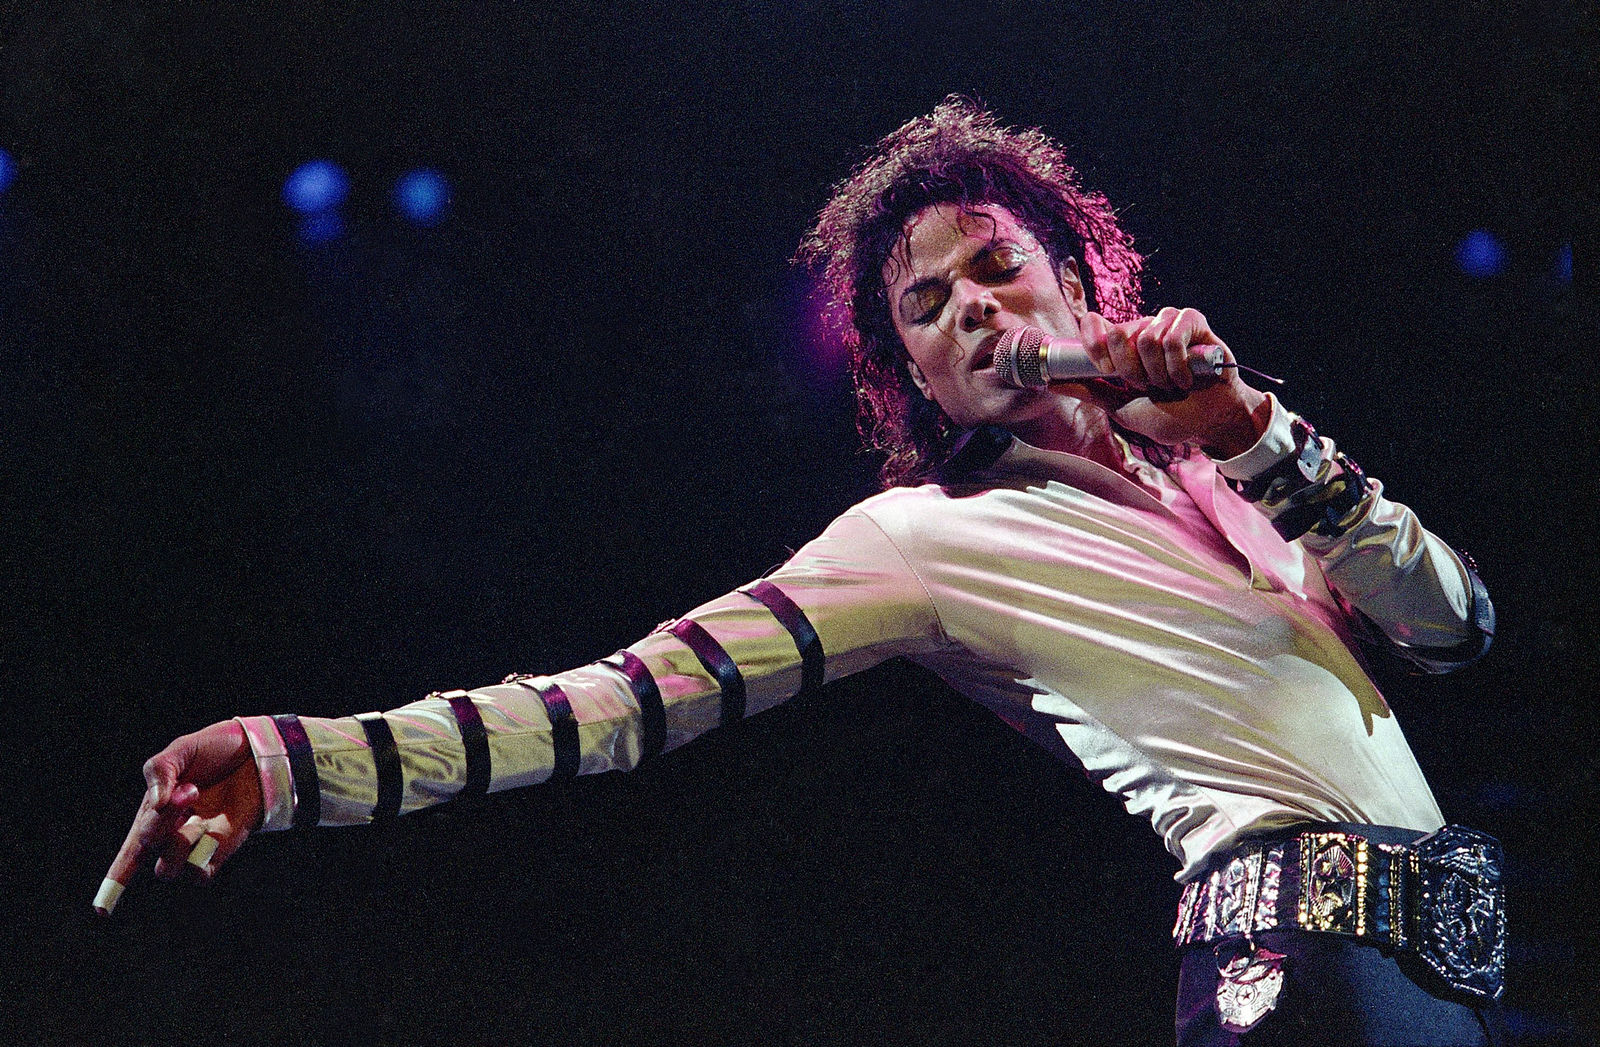 FILE - In this Feb. 24, 1988 file photo, Michael Jackson performs during his 13-city U.S. tour in Kansas City, Mo. The estate of Michael Jackson has landed the late King of Pop the biggest recording deal in history: a $200 million guaranteed contract with Sony Music Entertainment for 10 projects over seven years, according to a person familiar with the deal.  (AP Photo/Cliff Schiappa, File)